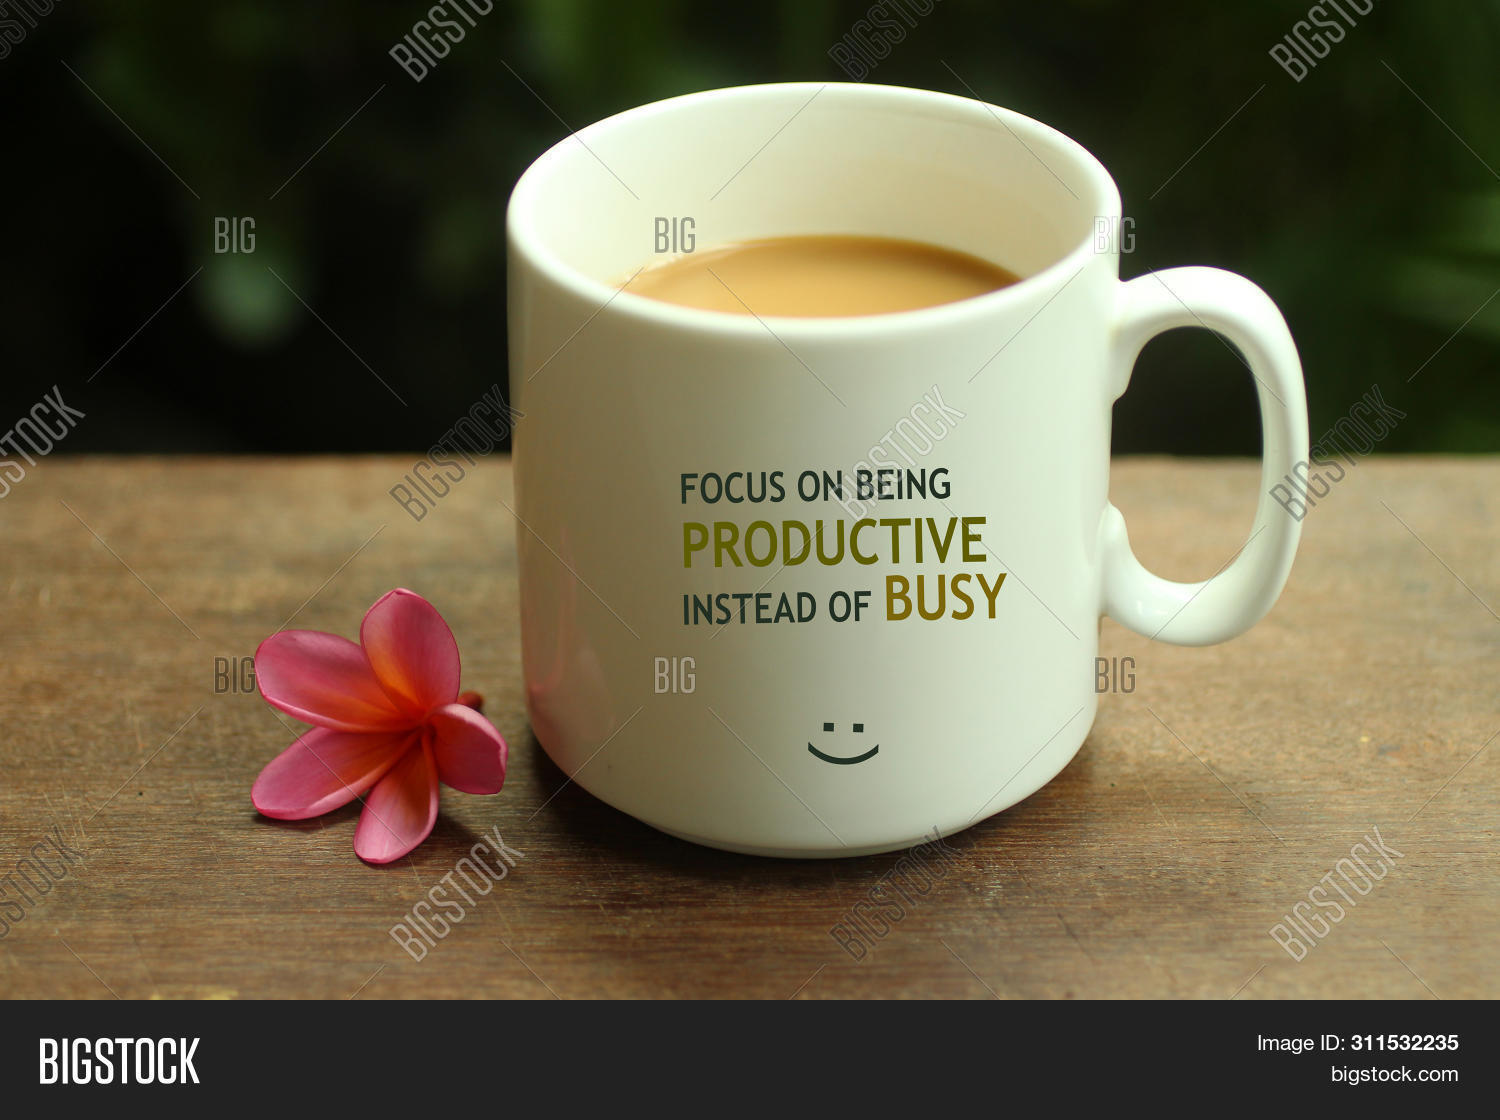 Morning Coffee concept. Work inspirational quote on a mug - Focus on being productive instead of busy. With white mug of coffee and self notes reminder on it. Morning tea or coffee concept with mug & a smile face sign and a beautiful pink Bali frangipani.